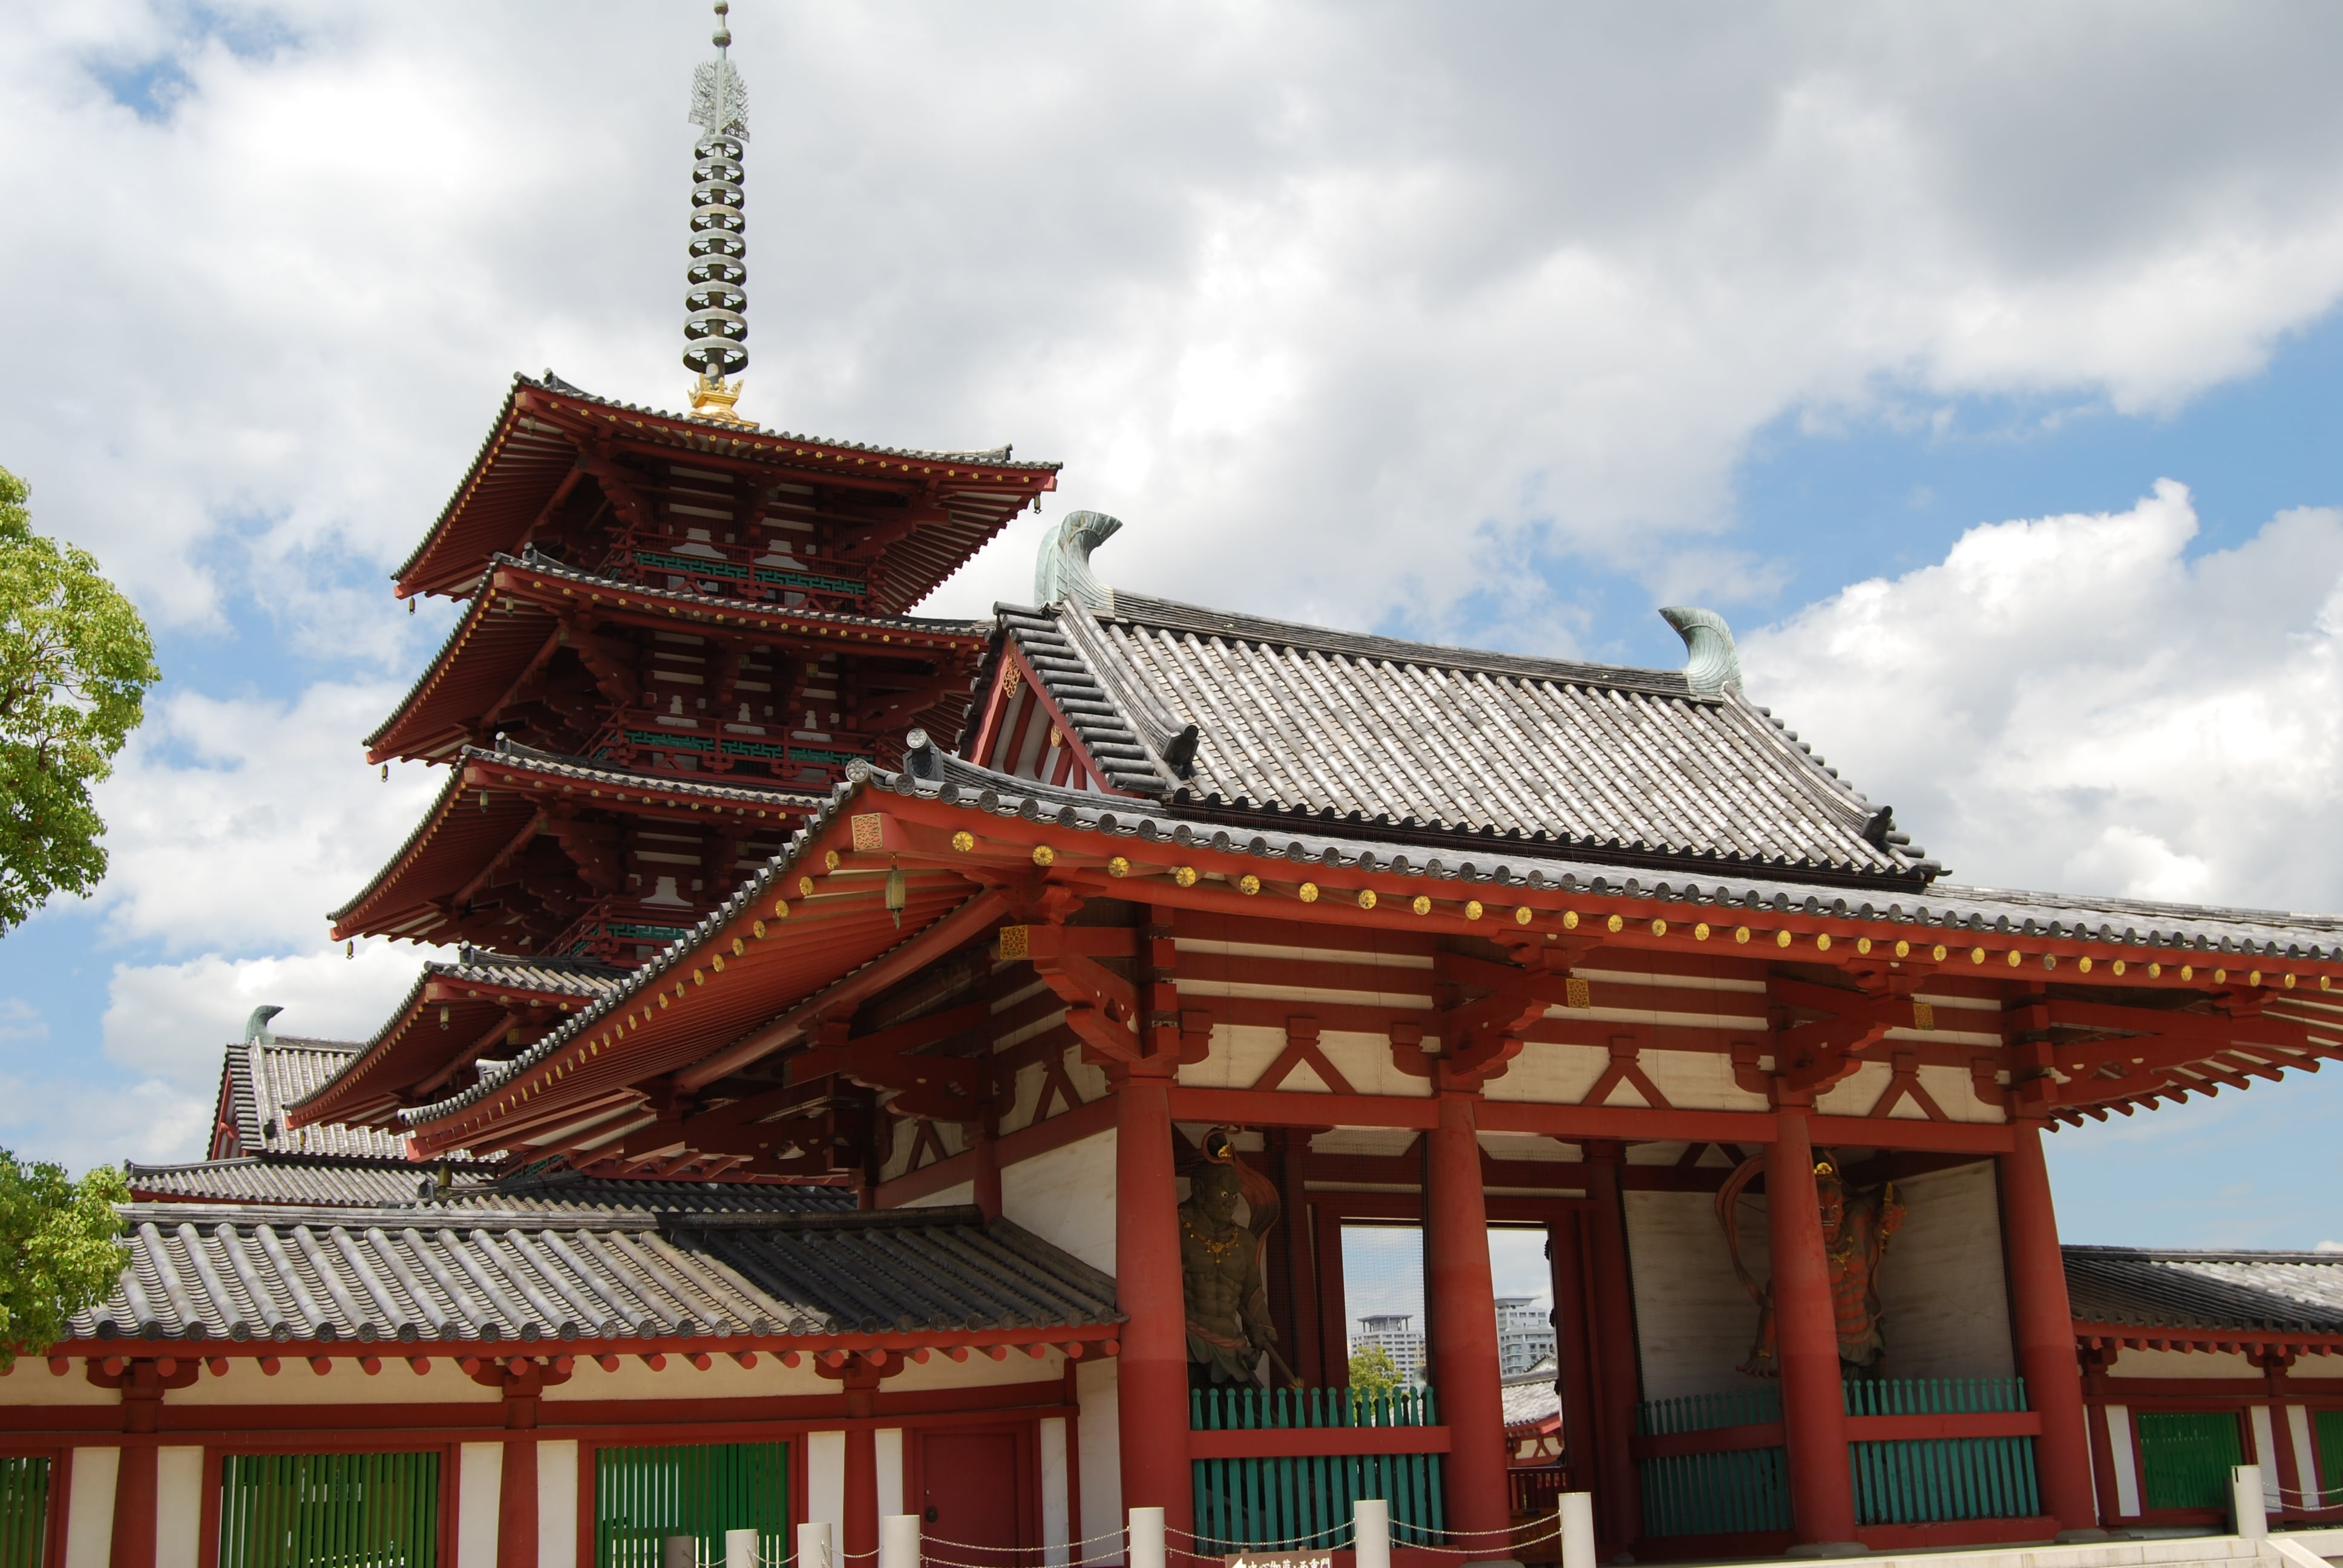 Five-story Pagoda from outside